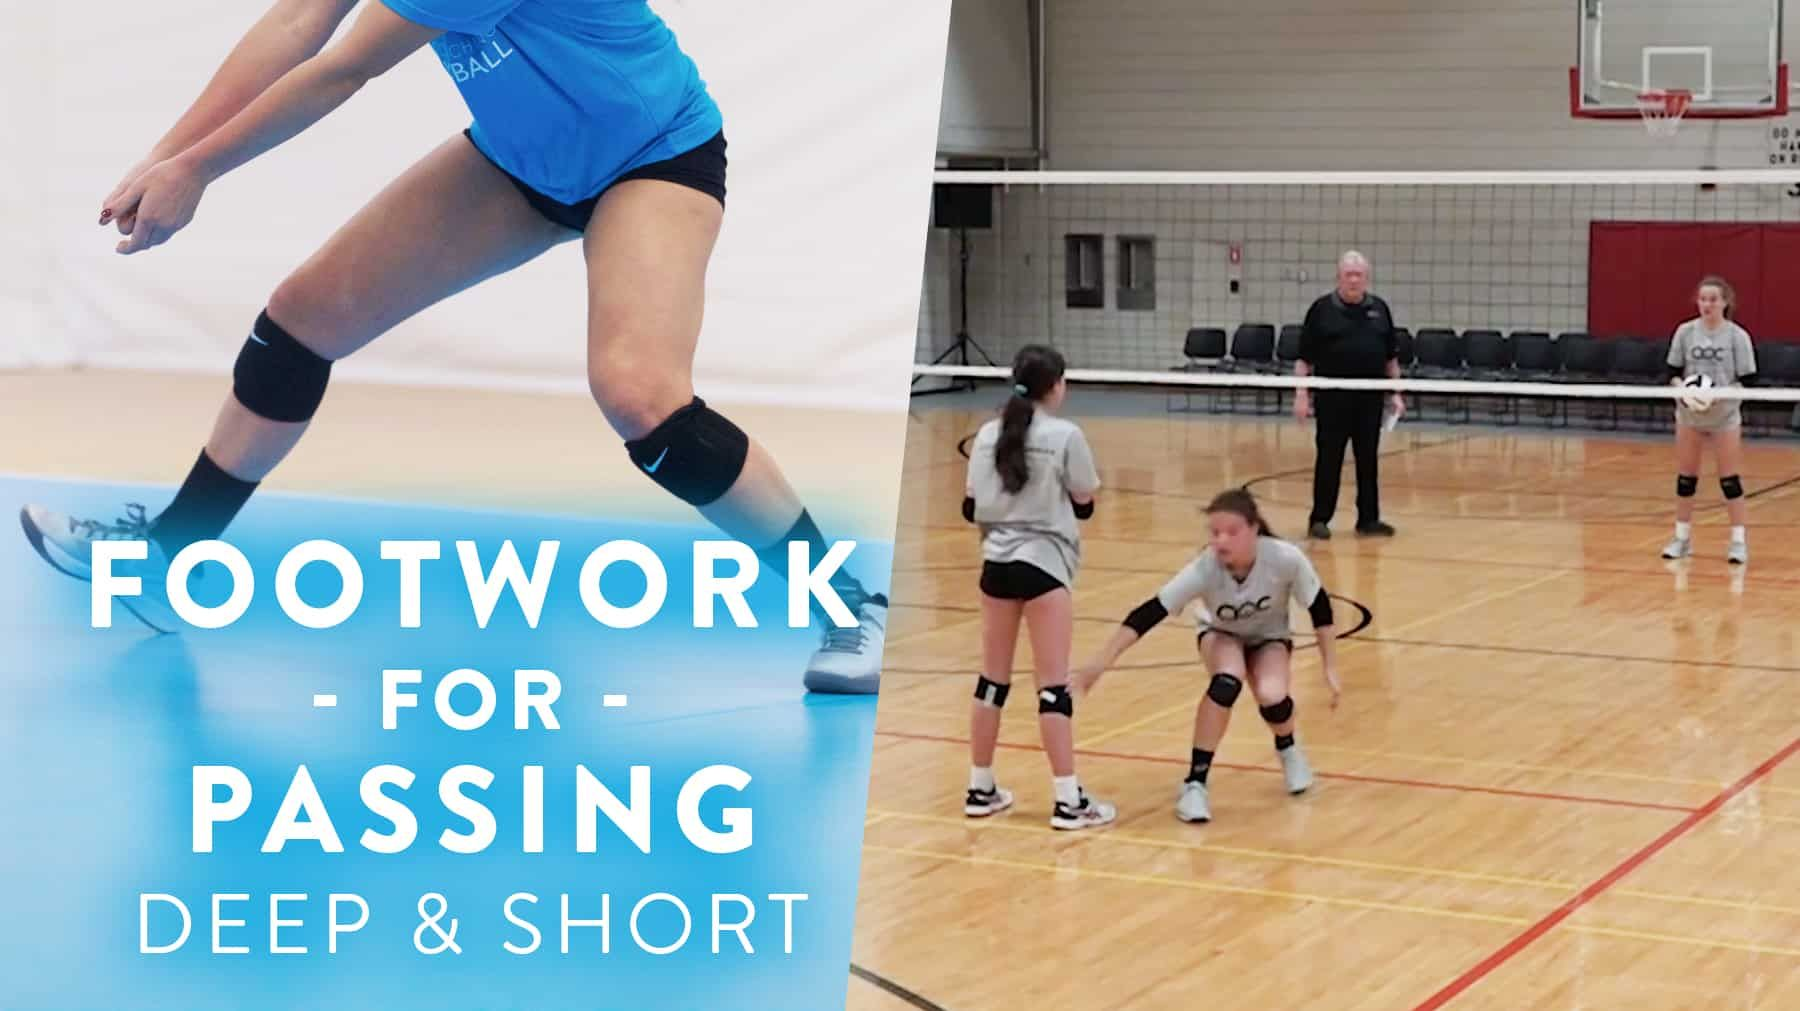 Footwork For Passing Deep And Short The Art Of Coaching Volleyball Volleyball Skills Coaching Volleyball Volleyball Training